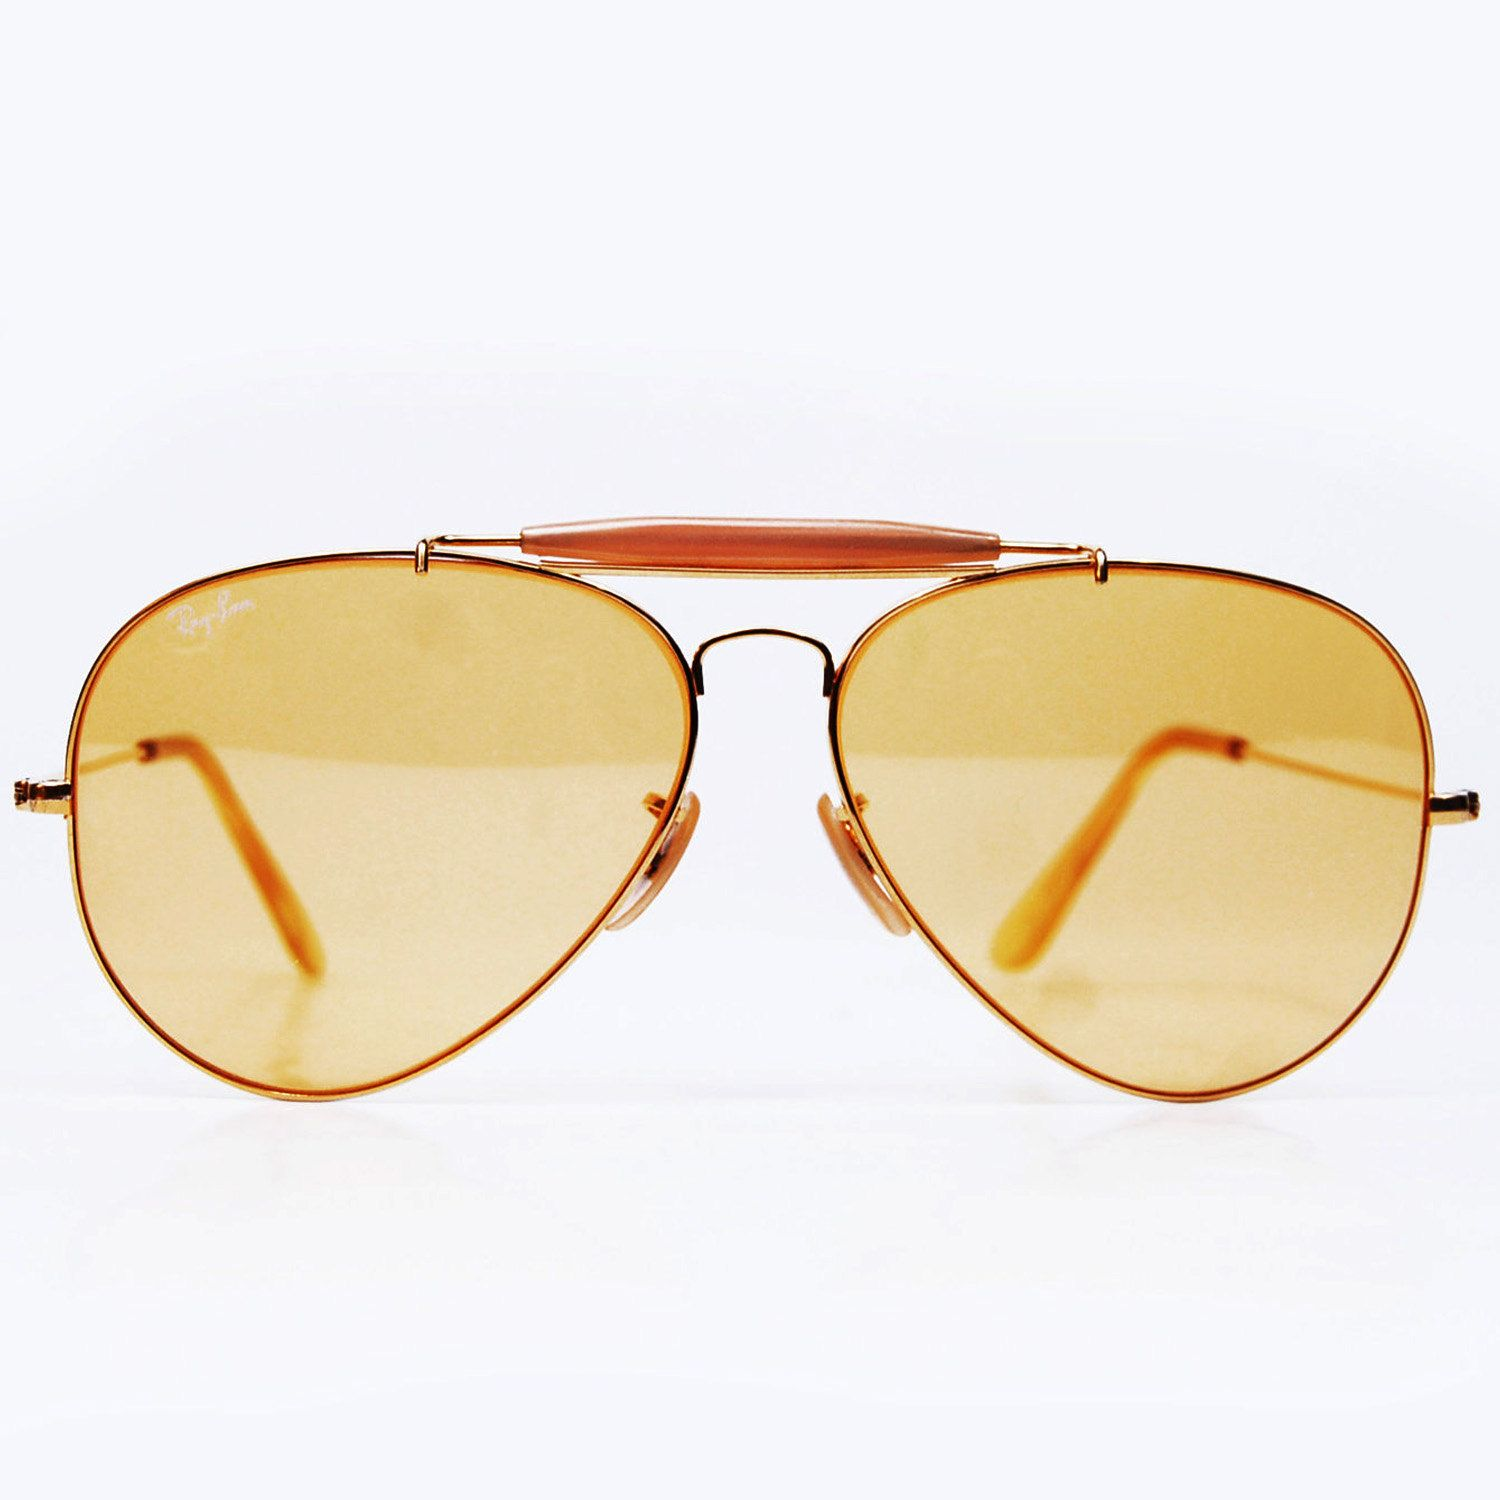 7962e86c366 Vintage Ray Ban Sunglasses. Bausch and Lomb Ambermatic Yellow Aviators 62mm